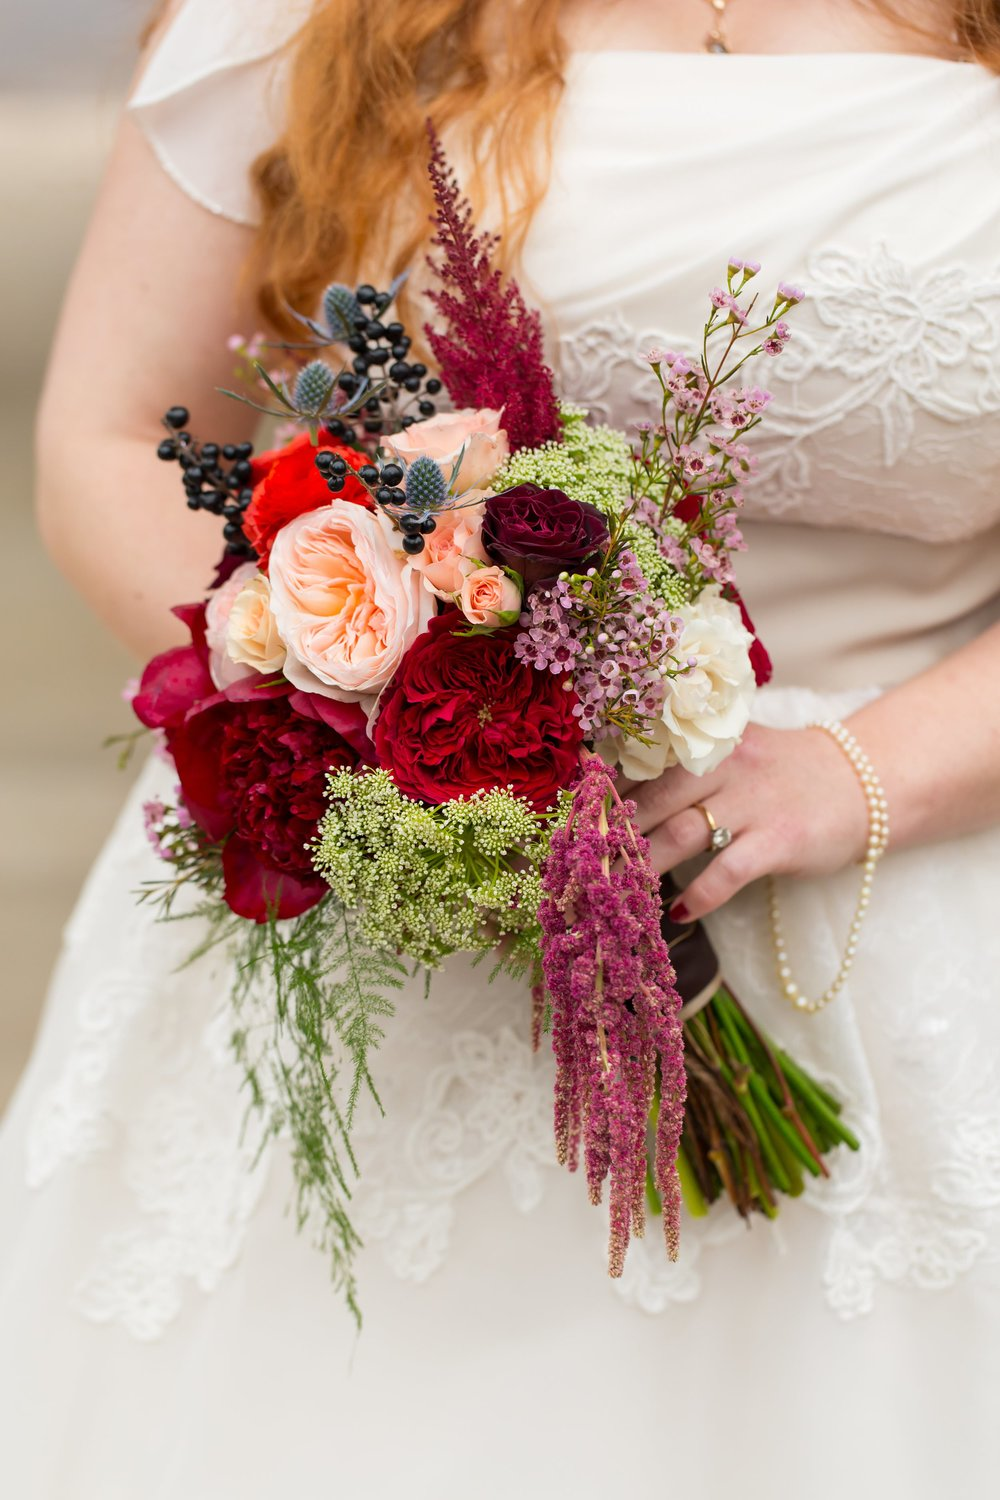 Katie put this glorious, warm toned bridal bouquet together herself! Can you believe that? She's so talented! I had to include this one just because it's so beautiful.